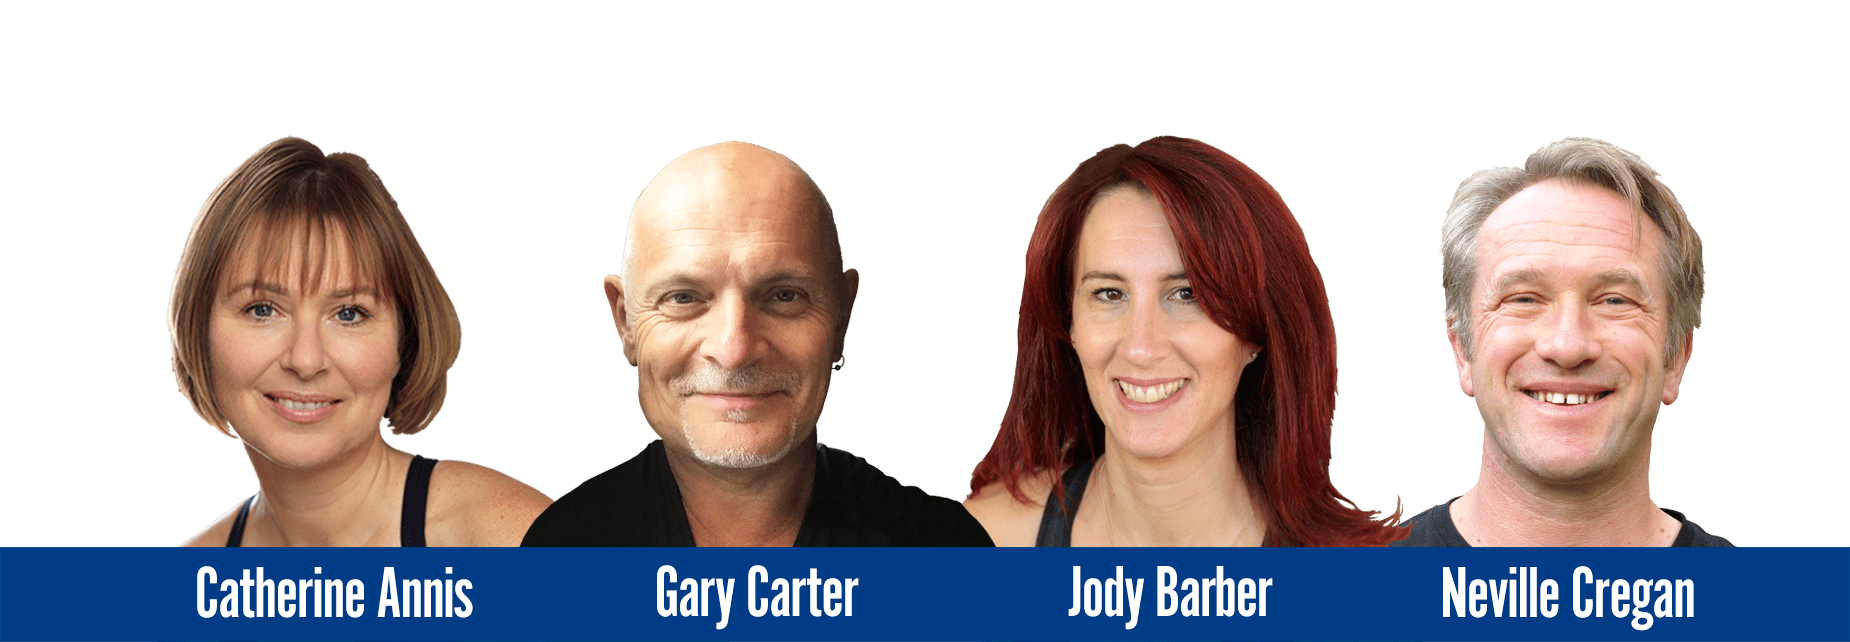 Scaravelli, BWY, ttc. London Yoga Teacher training course, accredited, Catherine Annis, Peter Blackaby, Gary Carter, UK